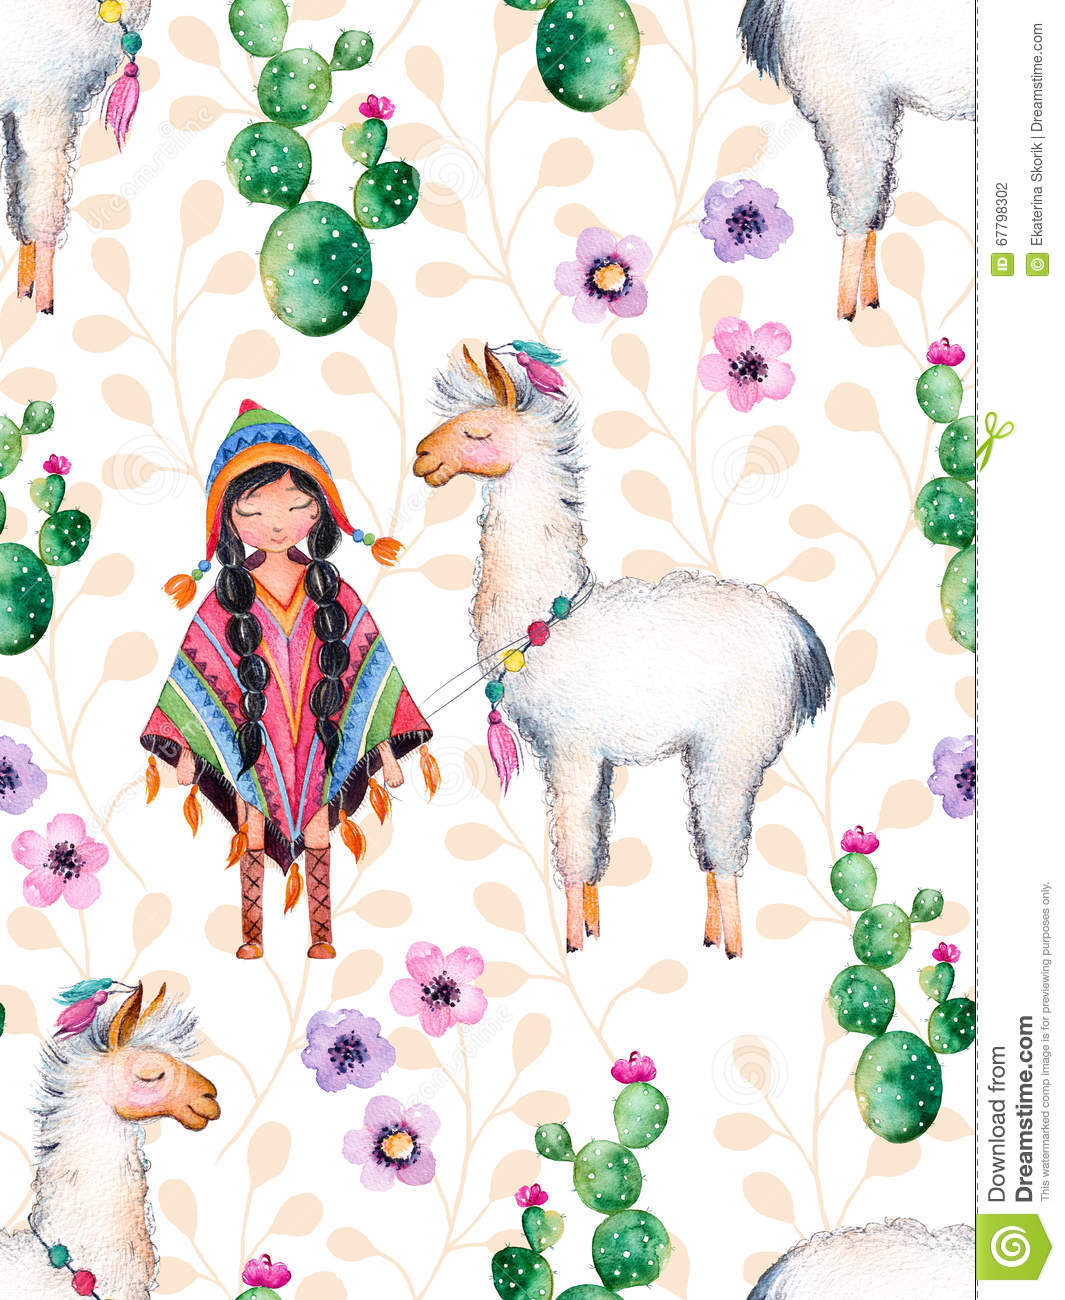 American Indian girl in traditional poncho and lama.